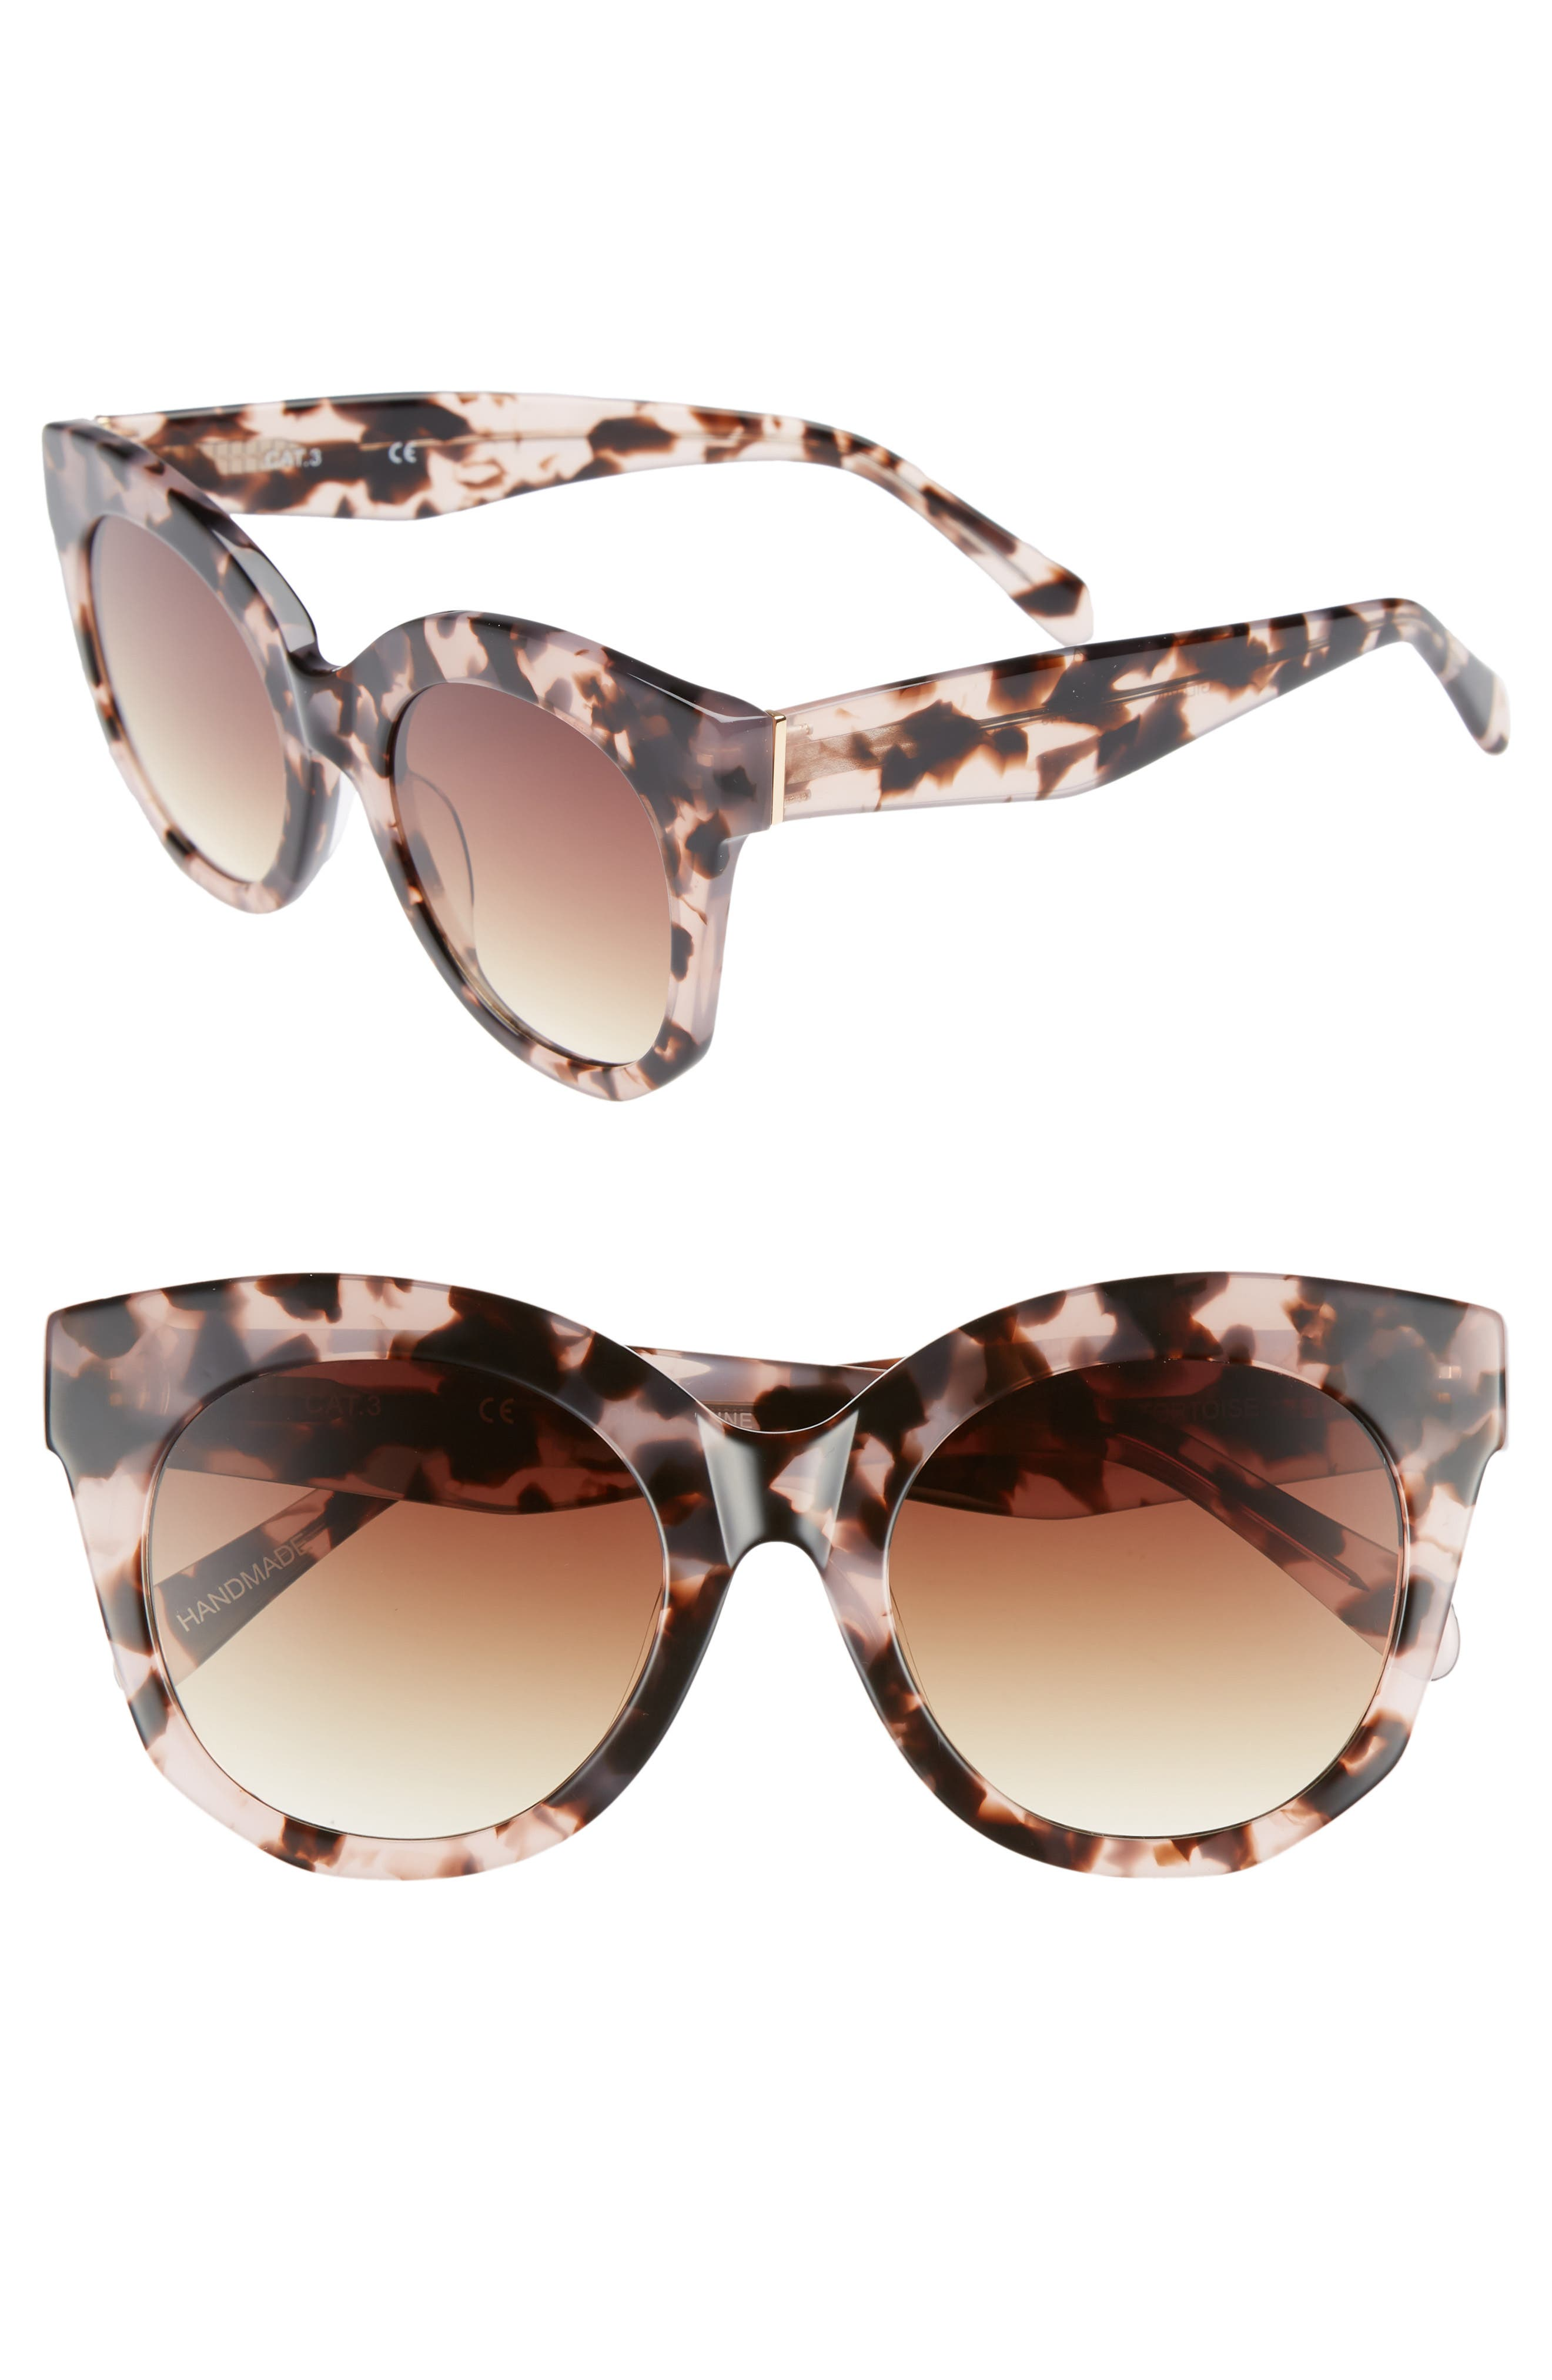 Gillian 52mm Sunglasses,                             Main thumbnail 1, color,                             Pink Tortoise